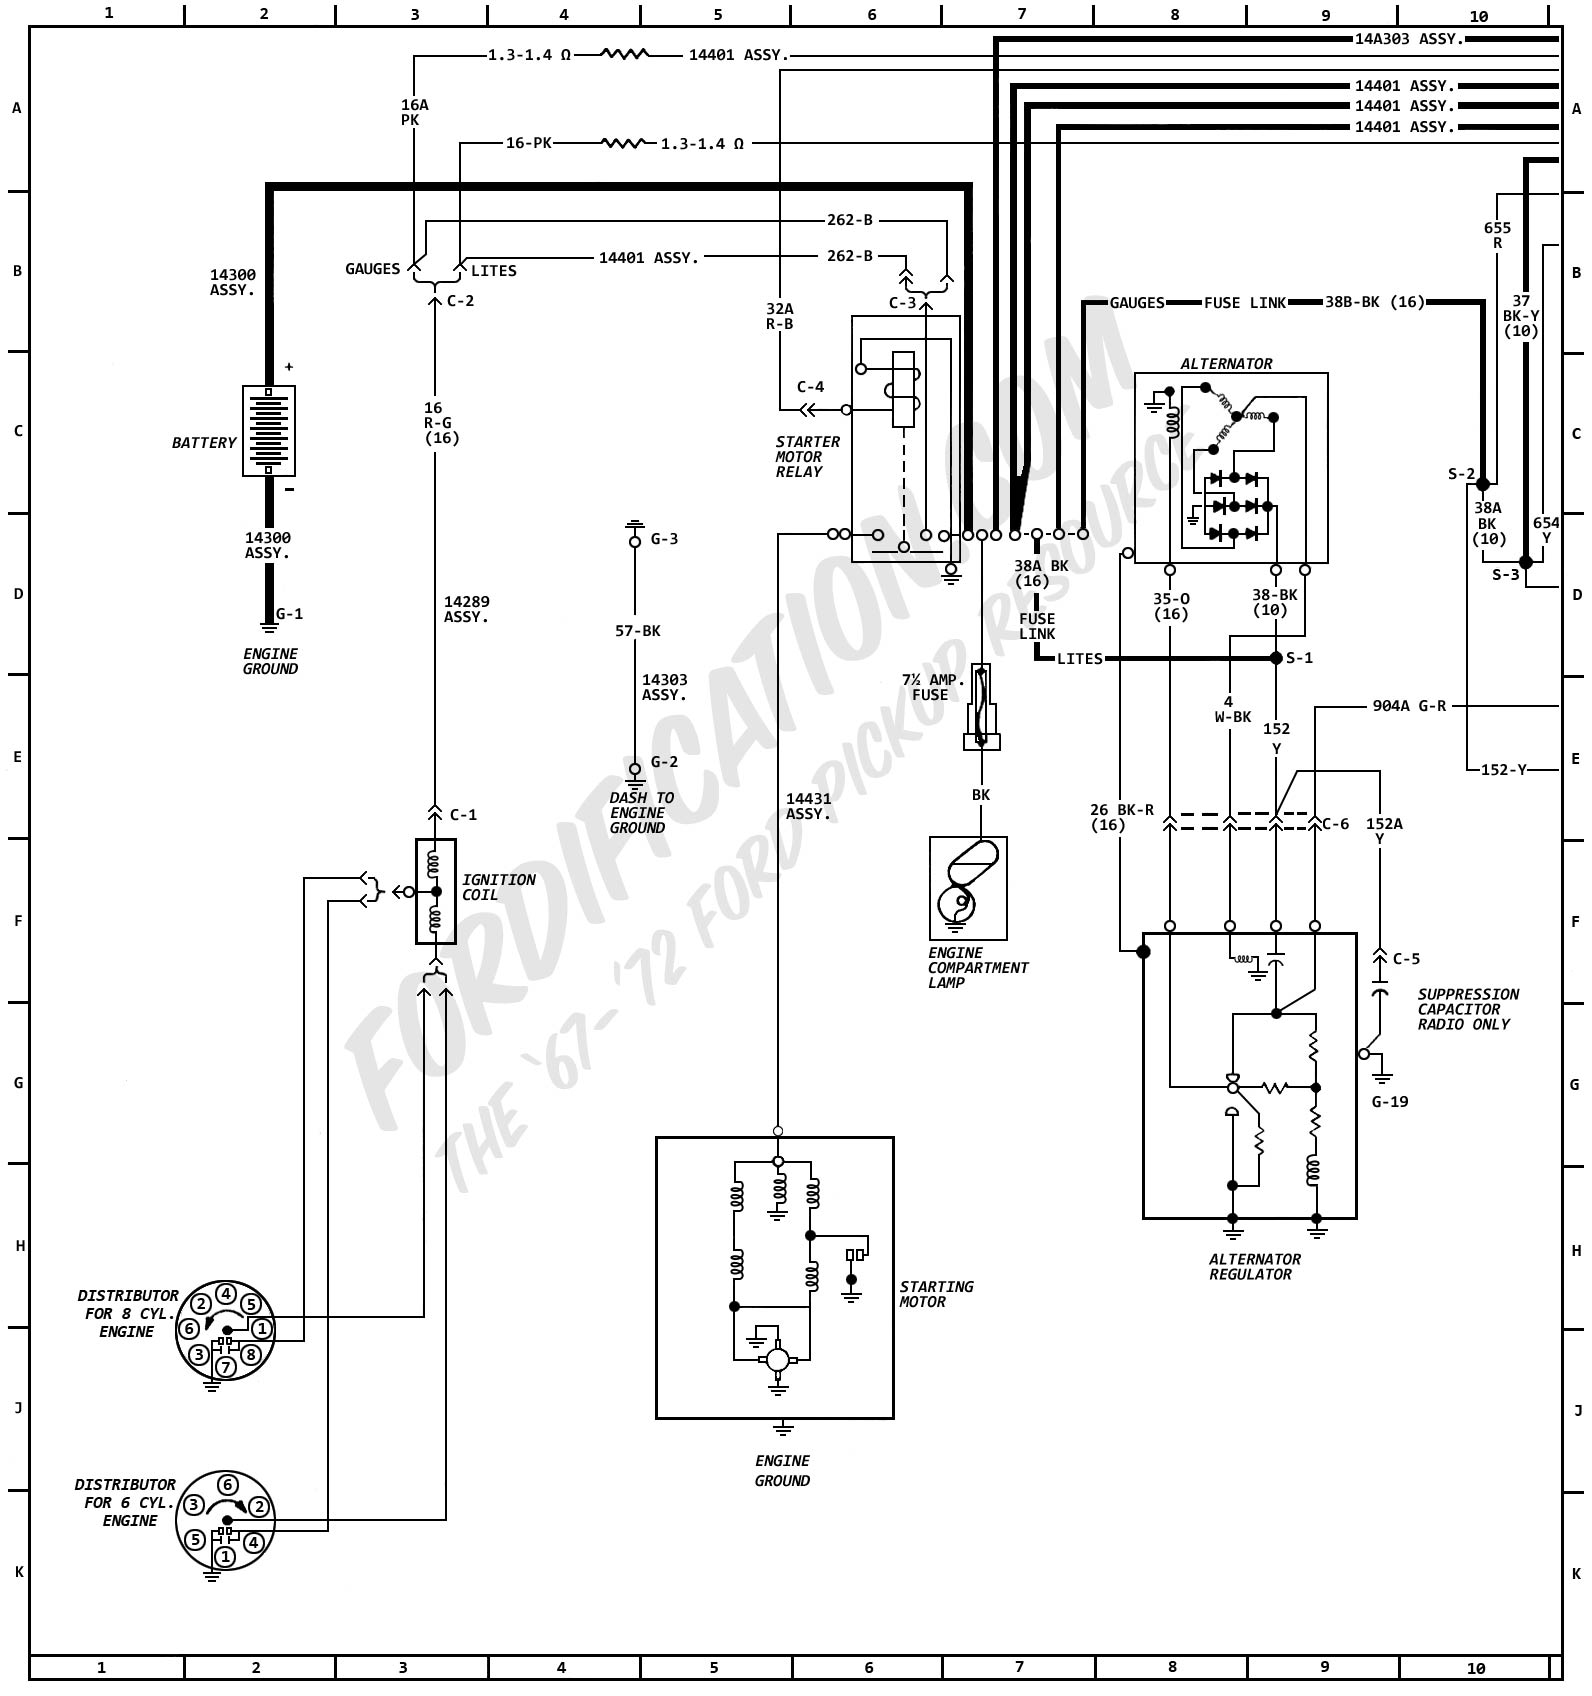 53 Ford Truck Wiring Diagrams Layout 1991 F250 Diagram 72 Schematic Rh Theodocle Fion Com 2003